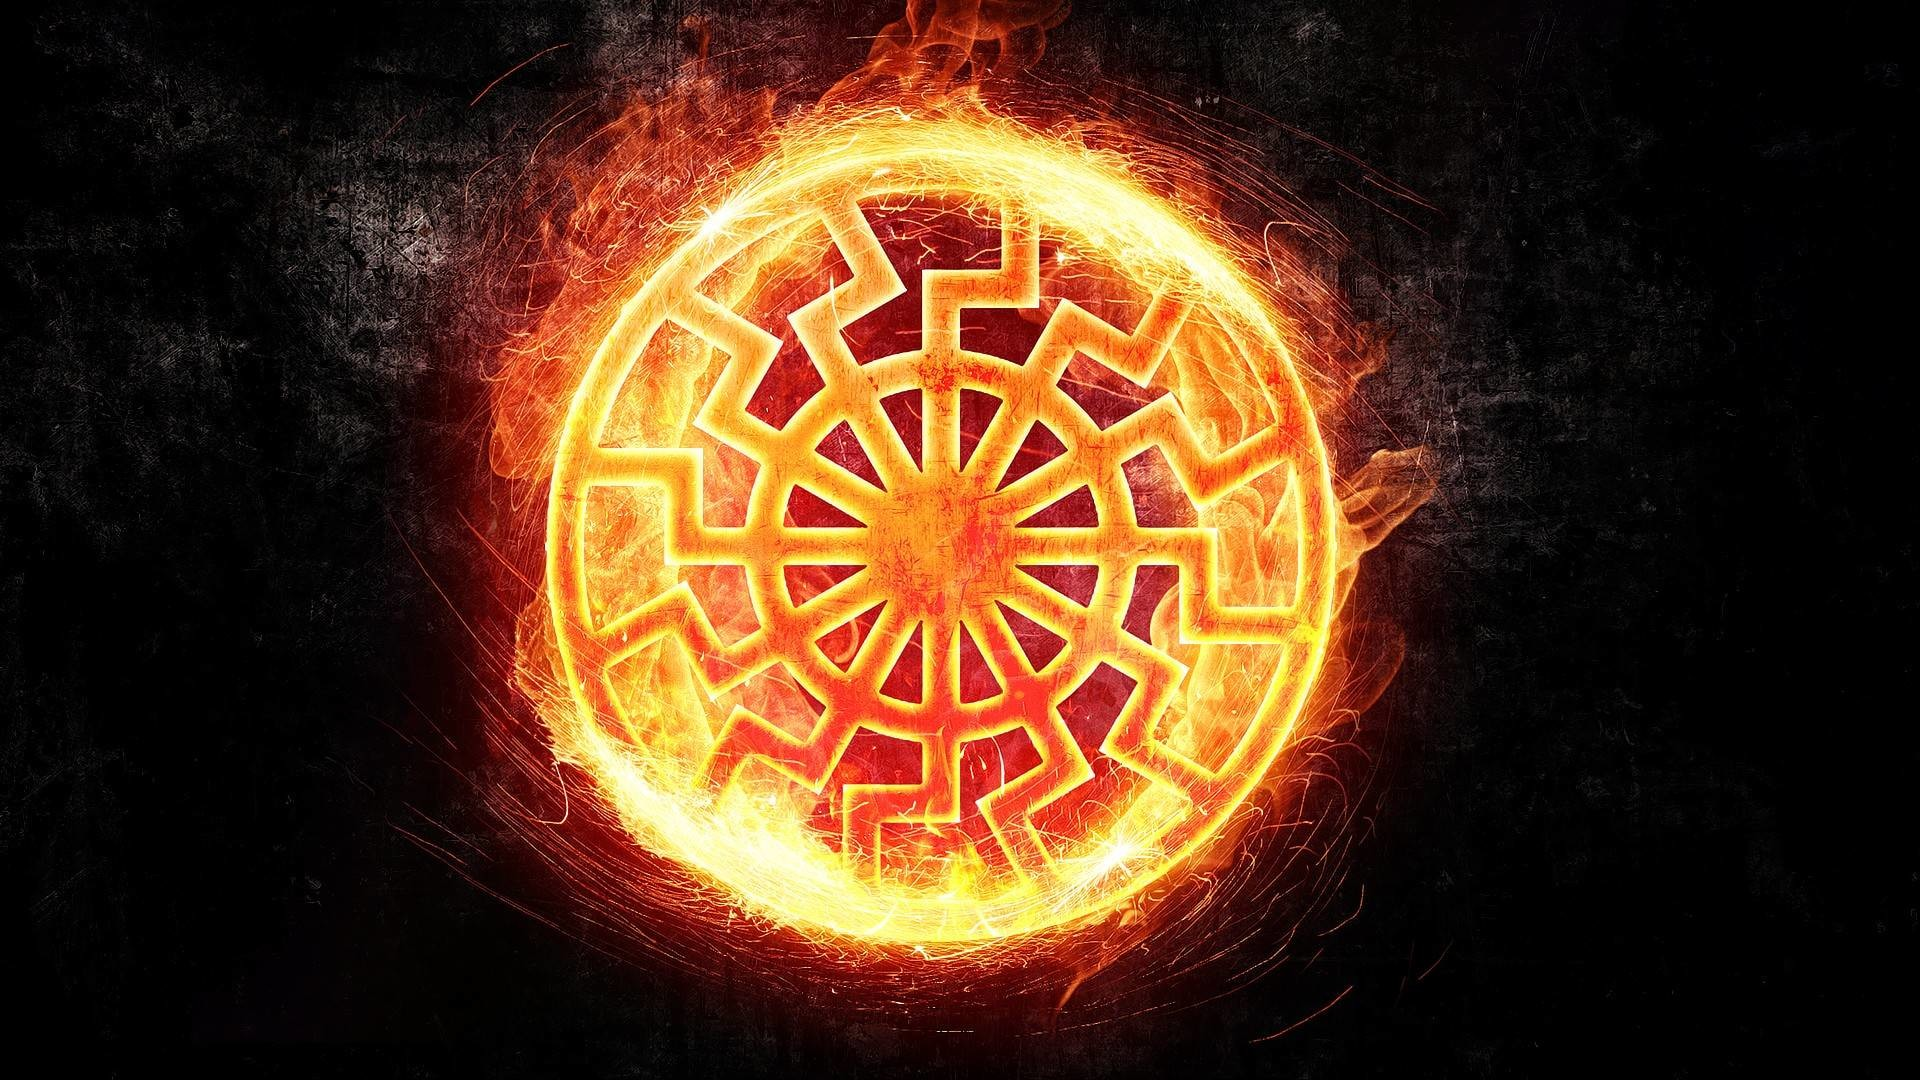 1920x1080 Fire Symbol Wallpaper PX ~ Wallpaper or Symbol #133479